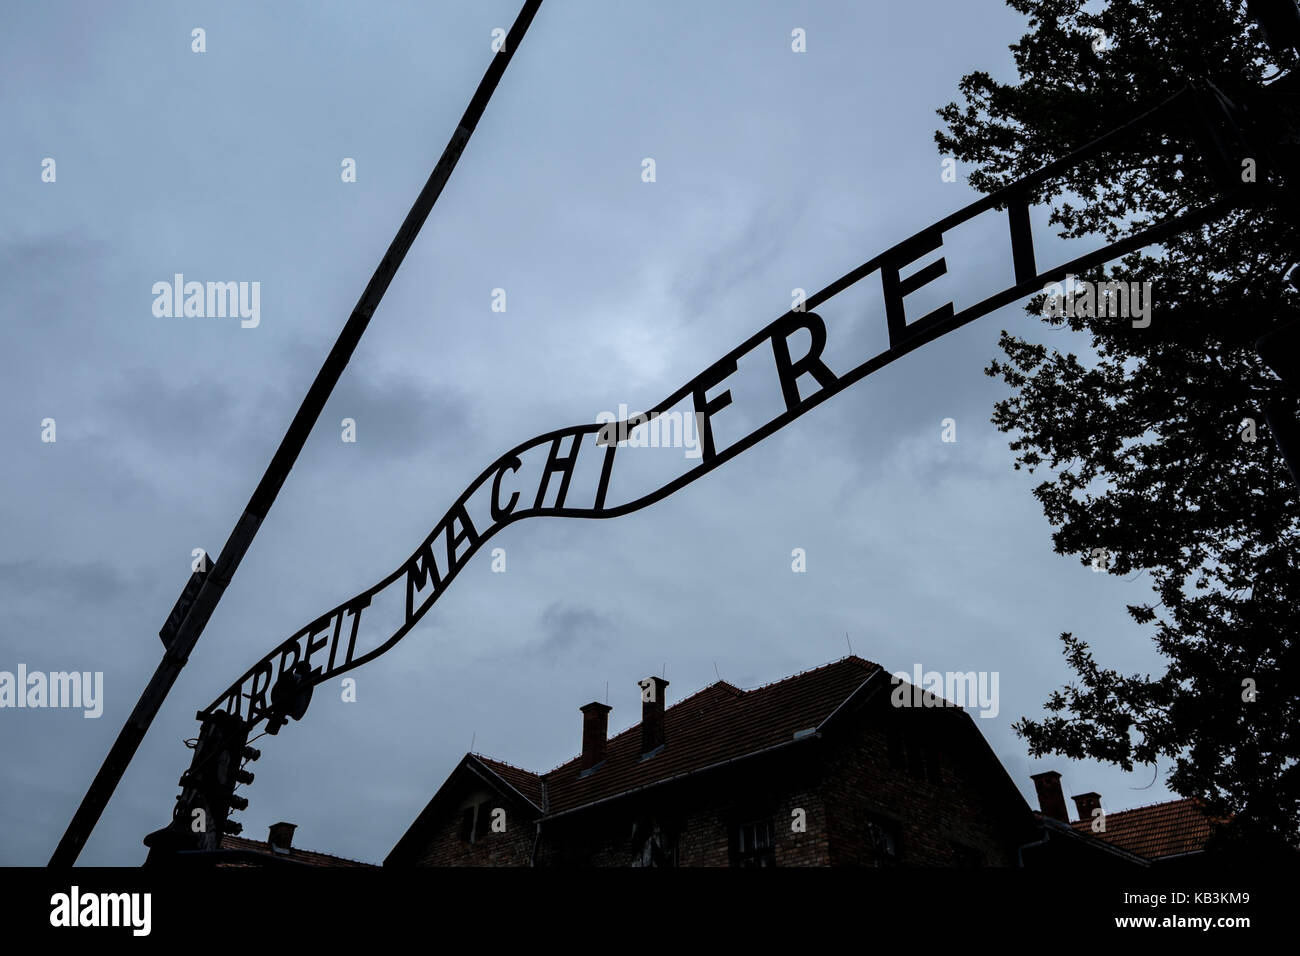 Arbeit Macht Frei sign at the entrance gate of Auschwitz WWII Nazi concentration camp, Poland - Stock Image